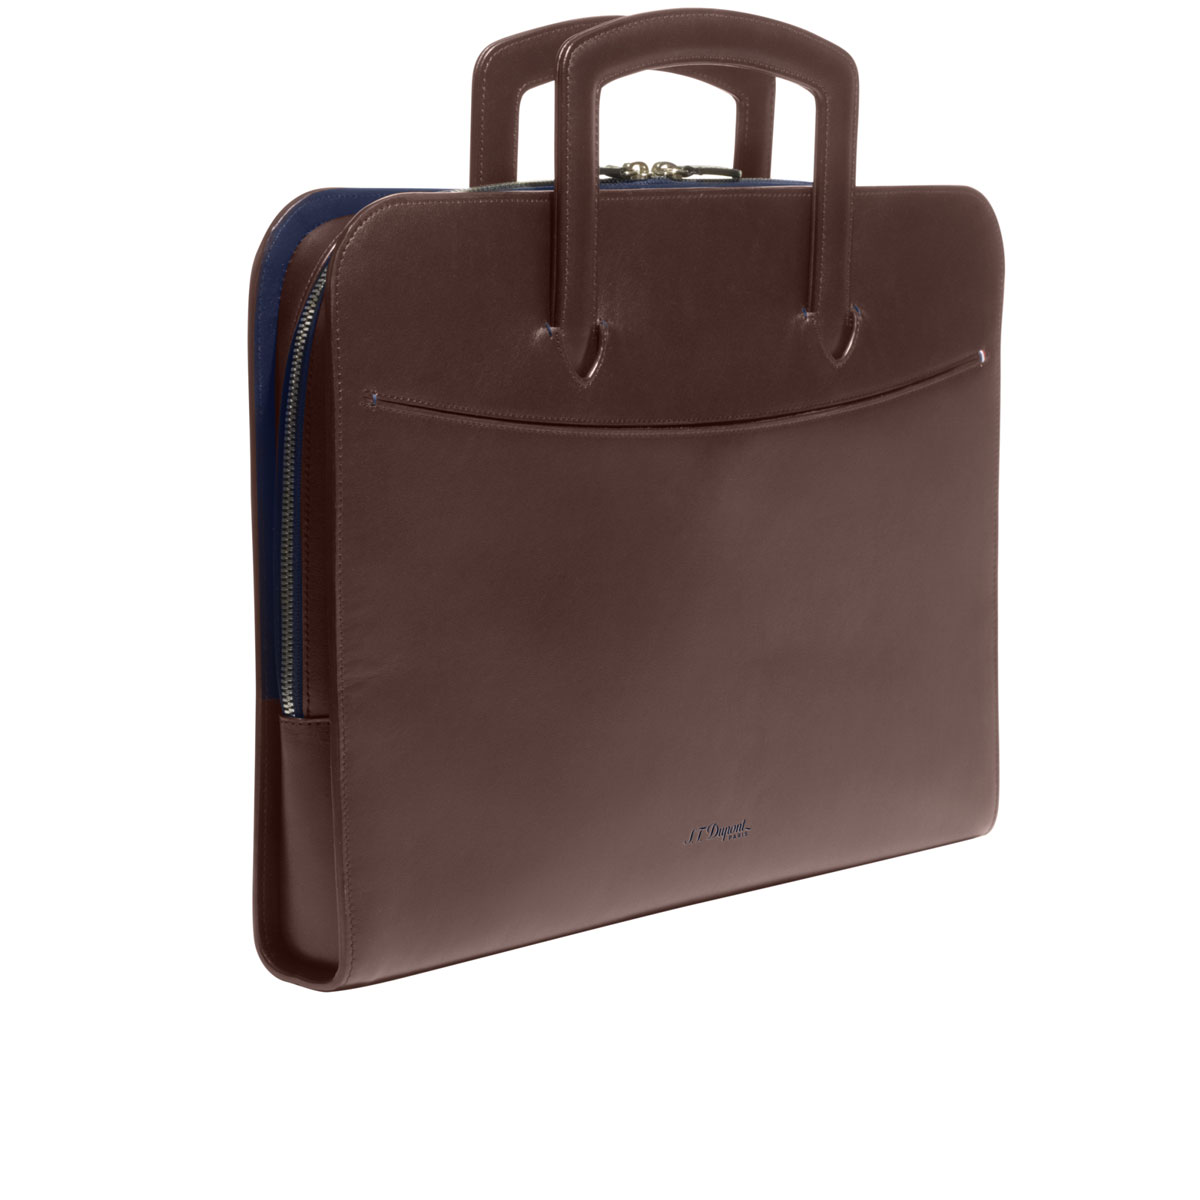 ST Dupont Line D Slim Brown-Blue Leather Document Bag